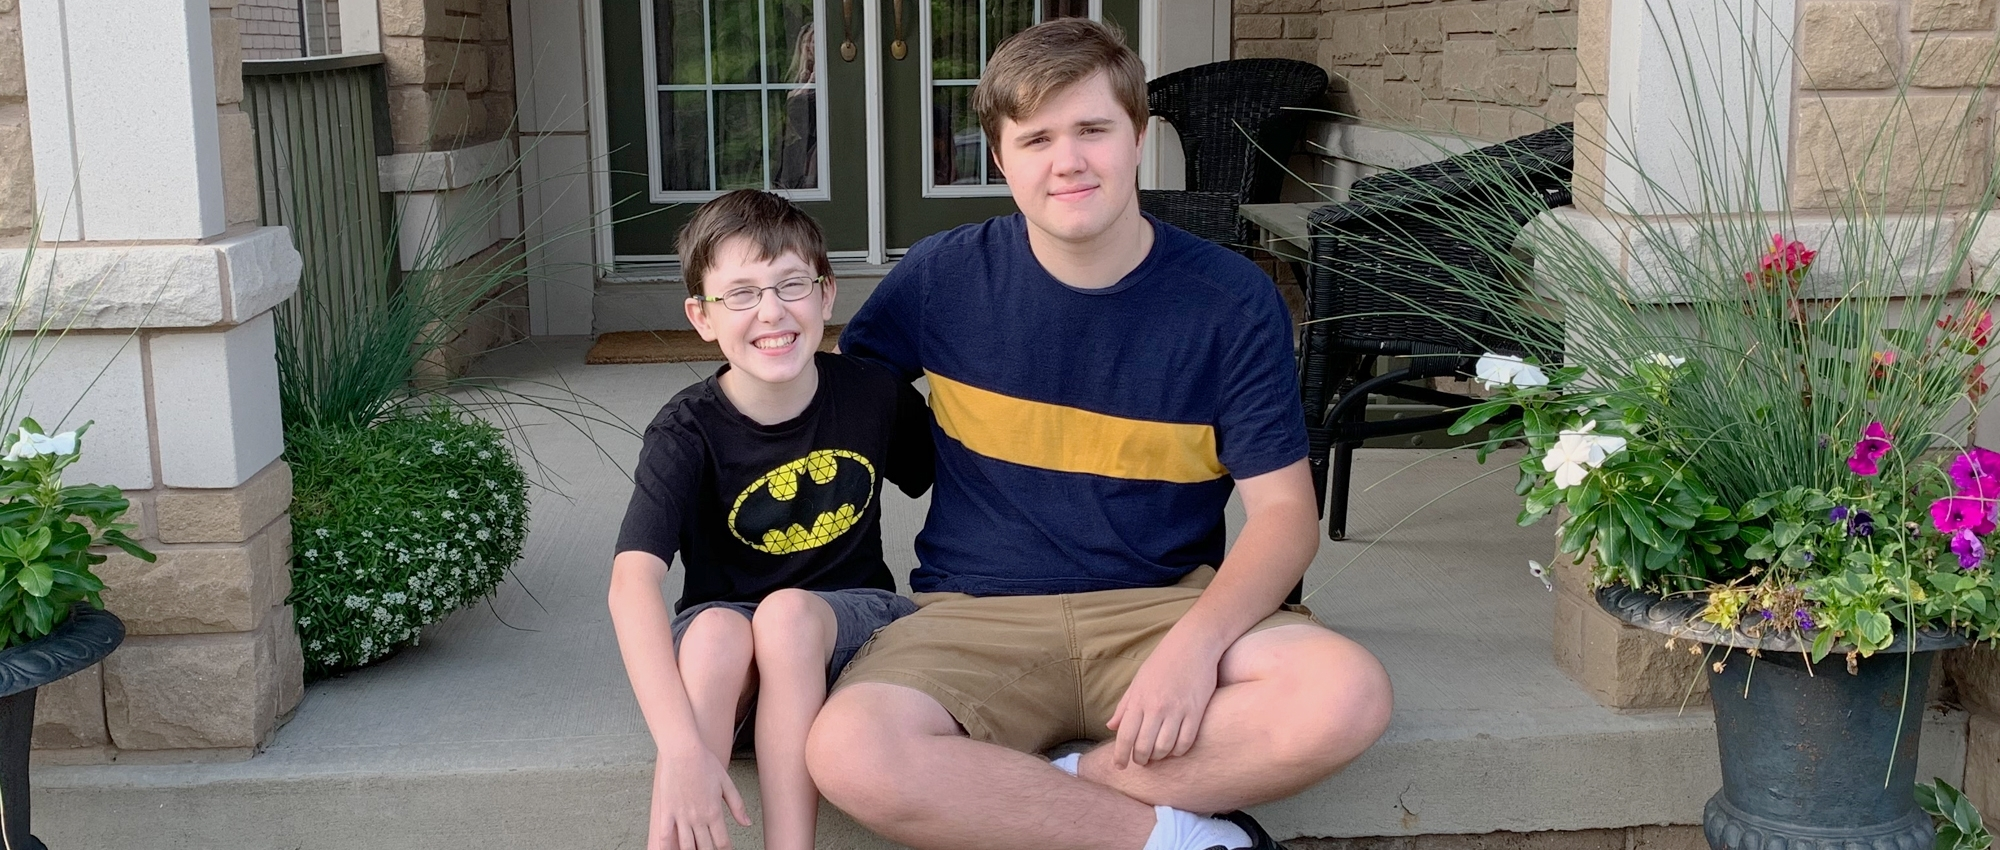 Nolan Clark, a teen who donated blood for the first time, sits on a porch with his younger brother Nicholas who had blood transfusions as an infant.